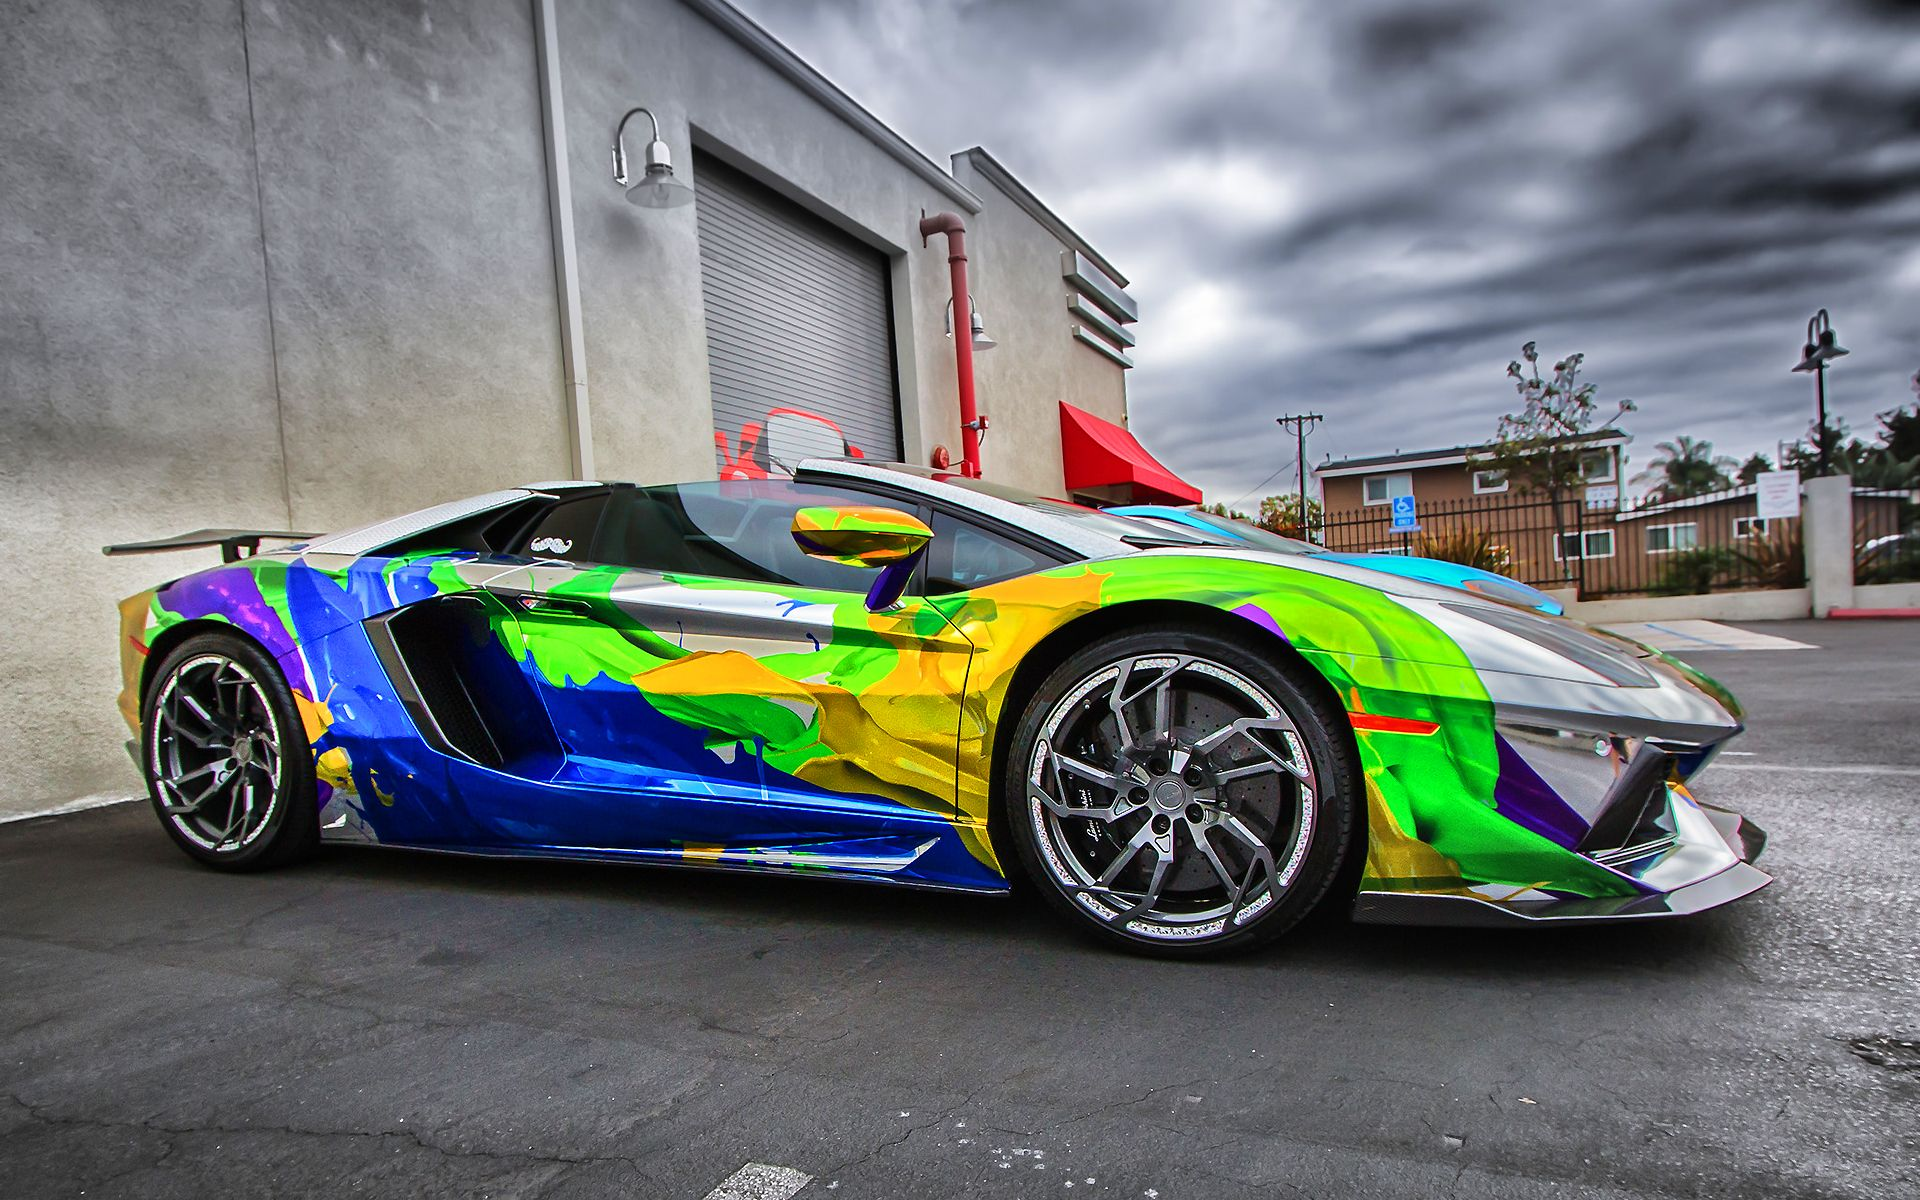 High Quality Merveilleux Hd Wallpaper Neon Cool Wallpapers Lamborghini Colors Hd 1080p  For Android Mobile Iphone Mac 1920x1080